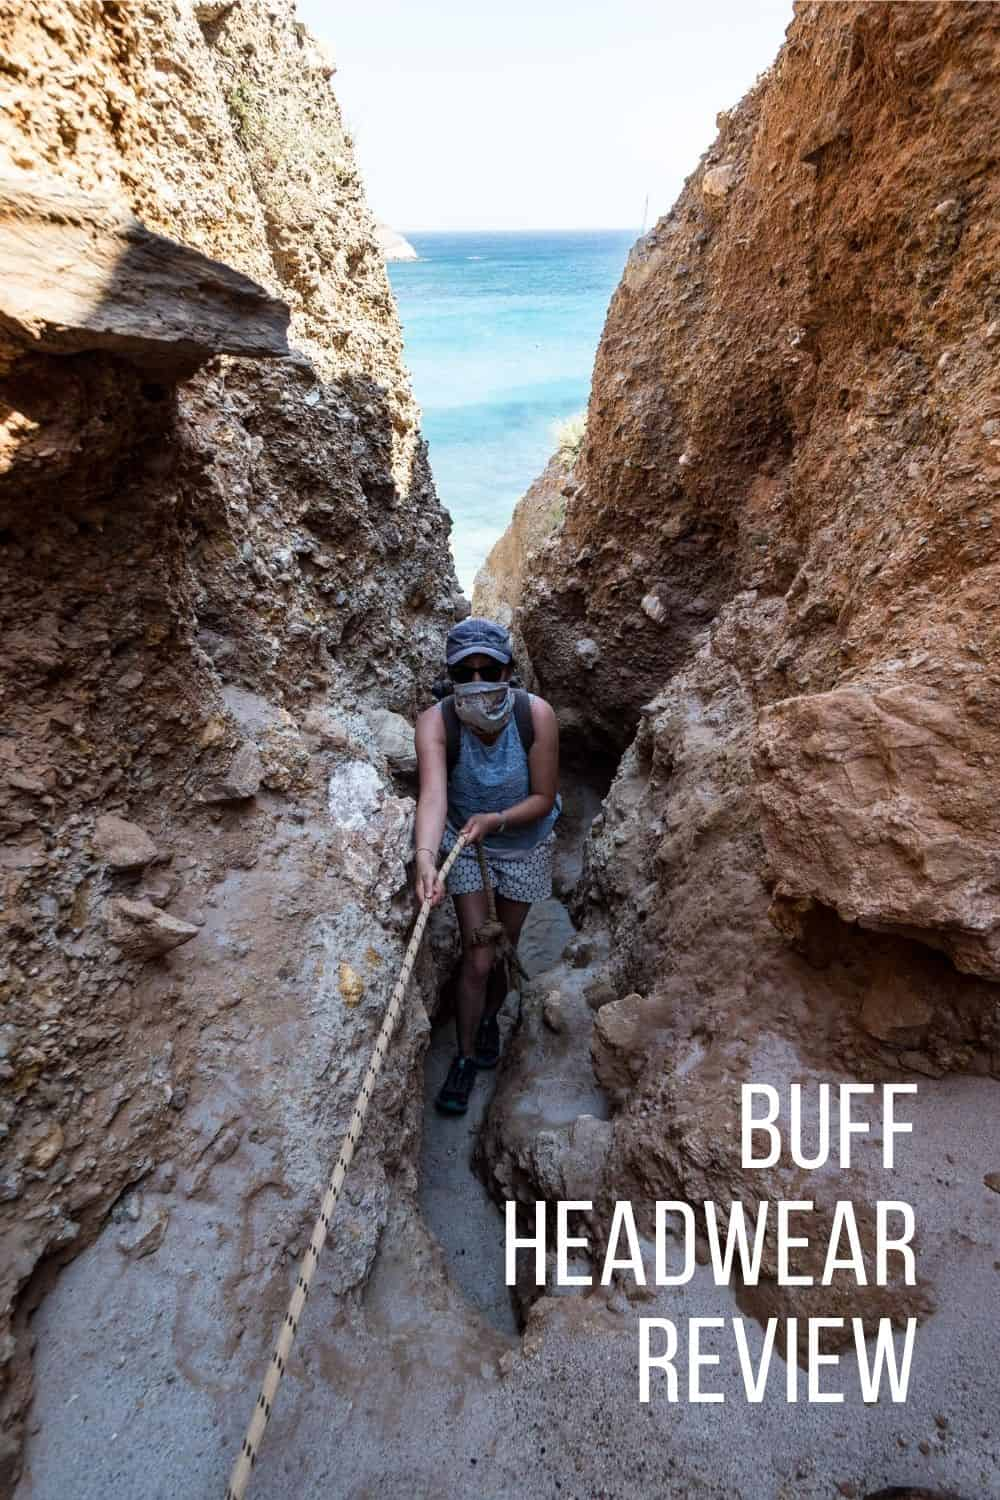 BUFF Headwear Review - The Most Versatile Piece of Travel Gear